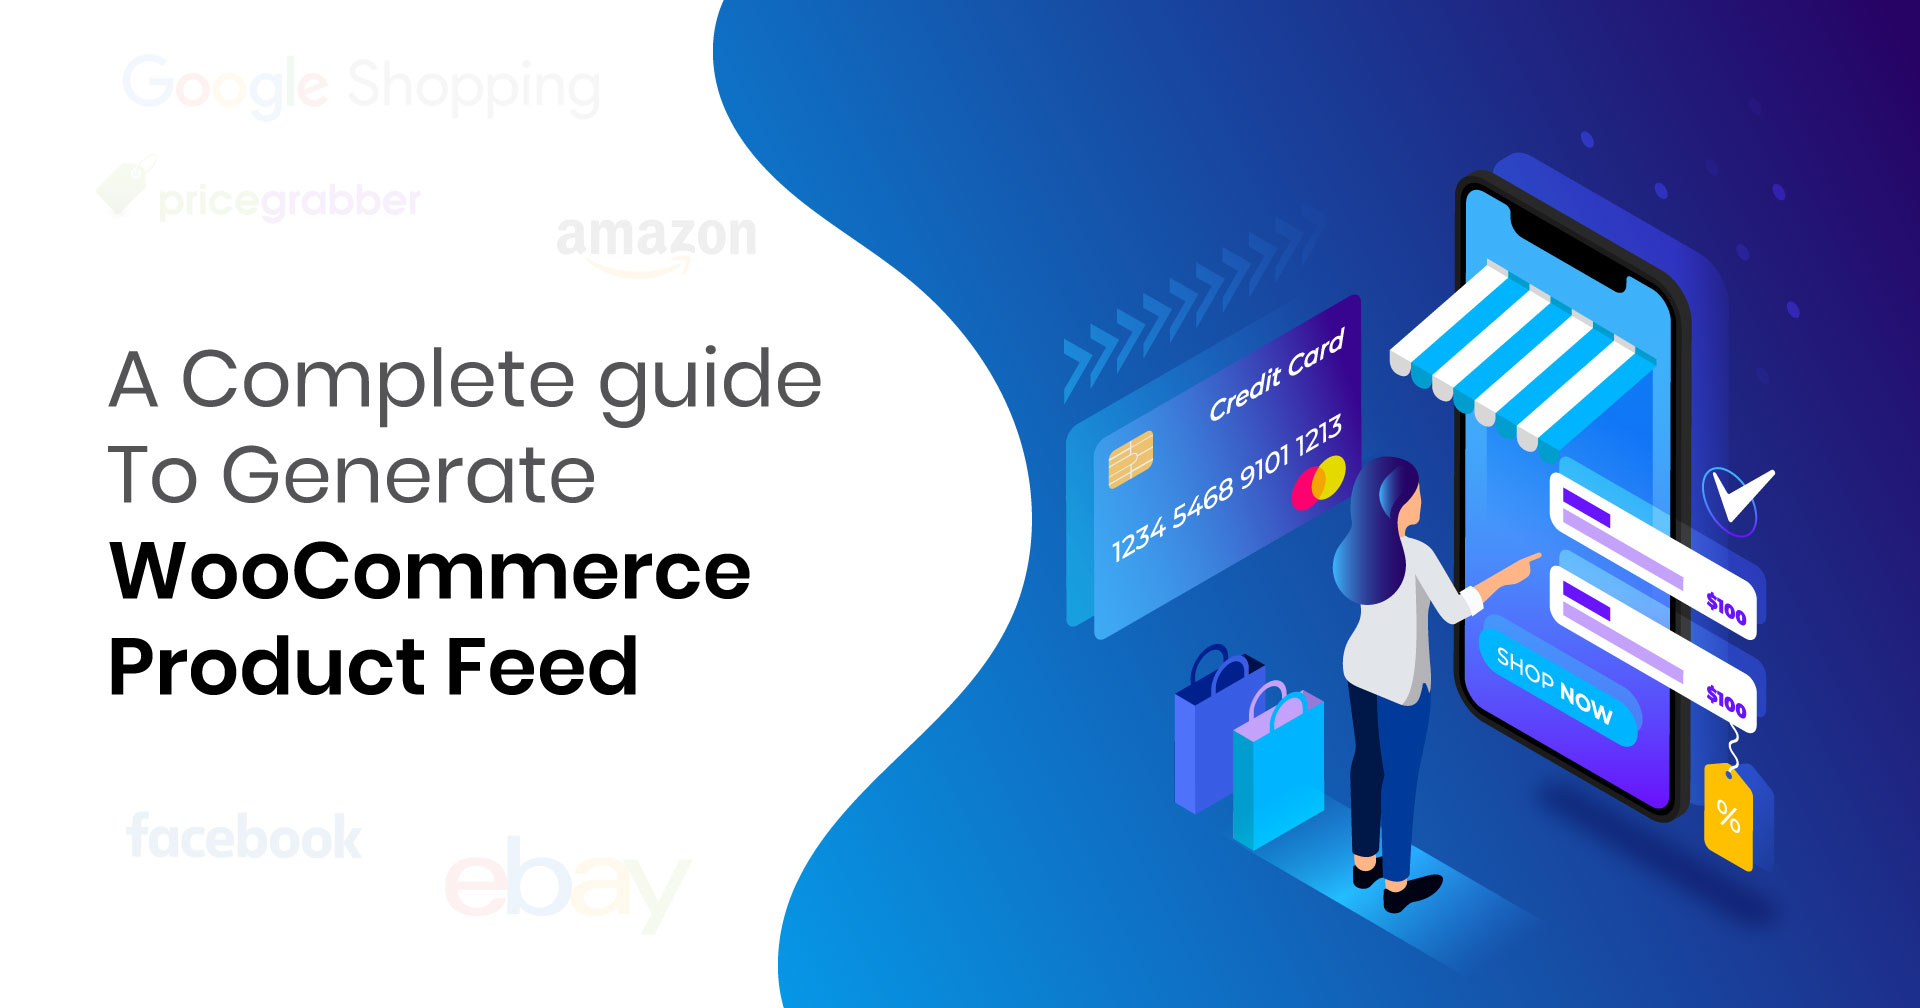 A Complete Guide To Generate WooCommerce Product Feed Accurately [2020]